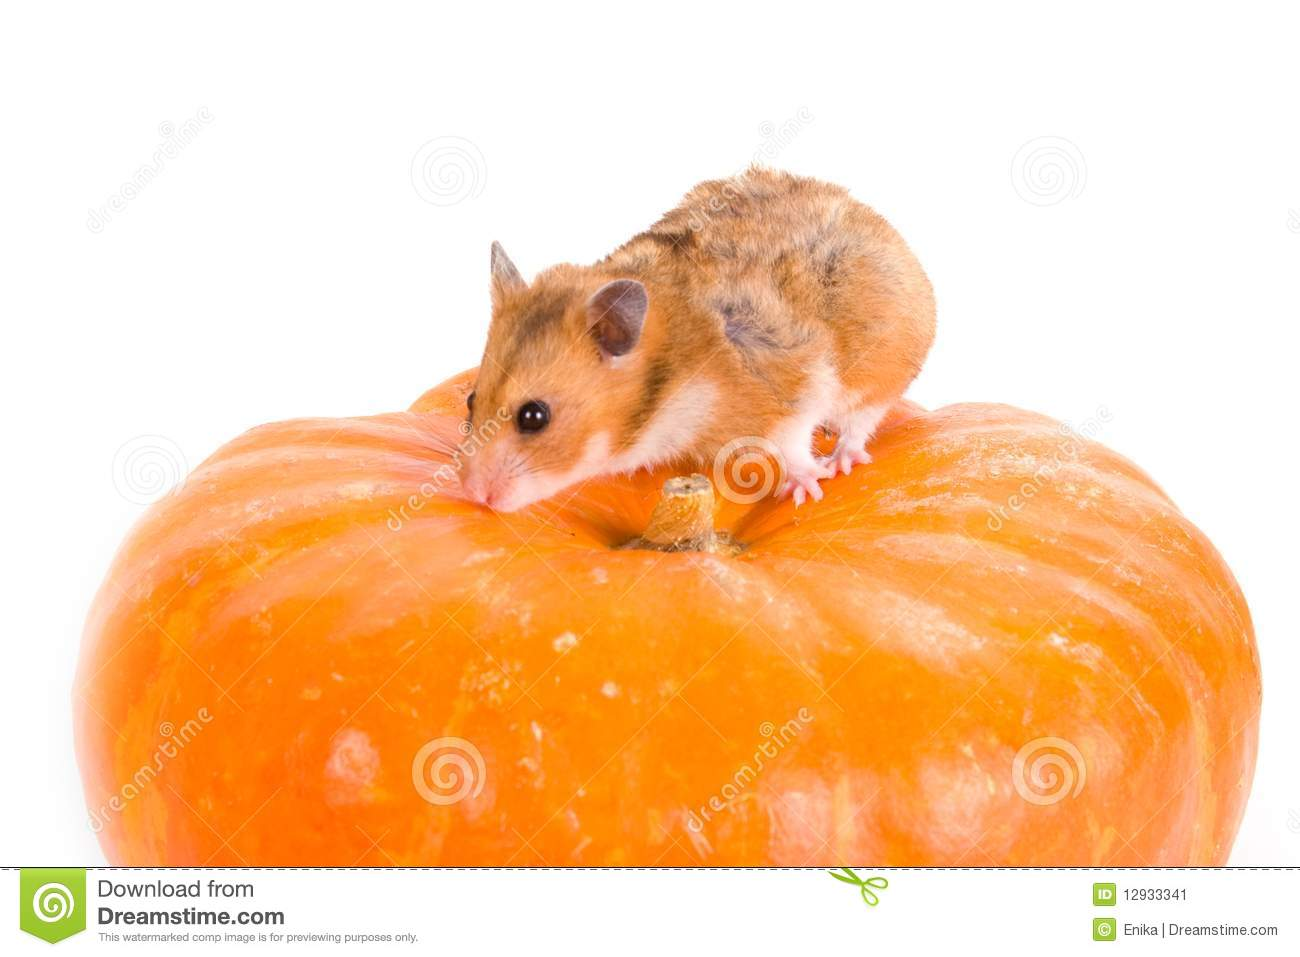 Redhamster